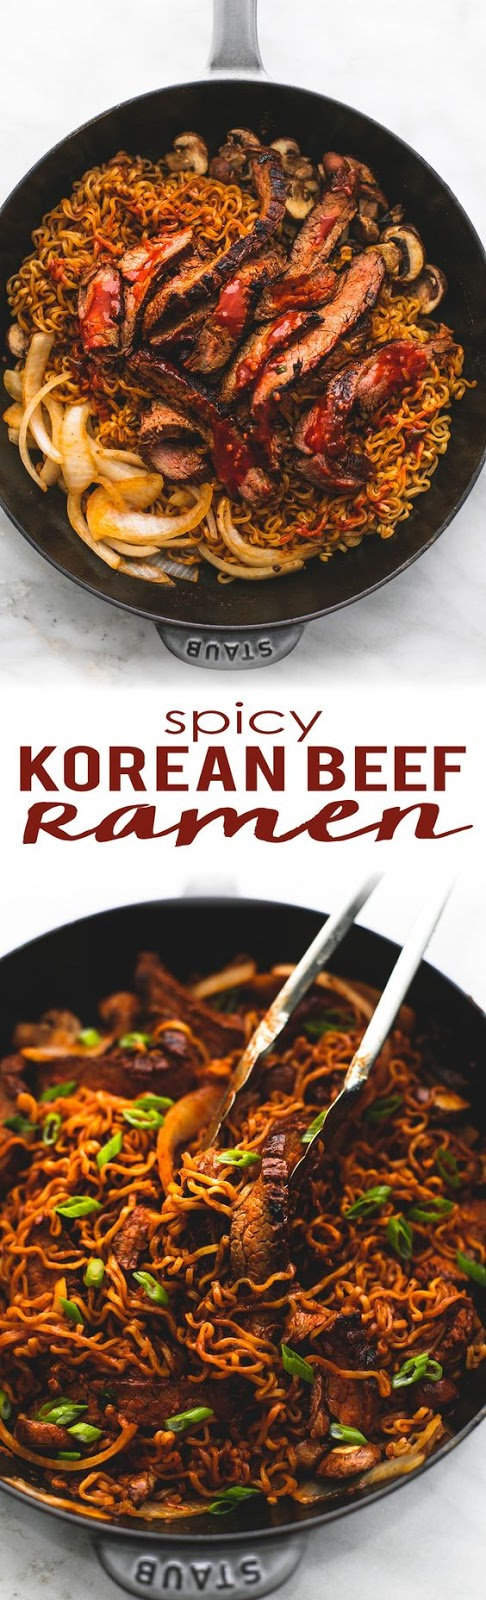 SPICY KOREAN BEEF NOODLES #SPICY #KOREAN #BEEF #NOODLES #HEALTHY   #DESSERTS #HEALTHYFOOD #EASY_RECIPES #DINNER #LAUCH #DELICIOUS #EASY #HOLIDAYS #RECIPE #SPECIAL_DIET #WORLD_CUISINE #CAKE #GRILL #APPETIZERS #HEALTHY_RECIPES #DRINKS #COOKING_METHOD #ITALIAN_RECIPES #MEAT #VEGAN_RECIPES #COOKIES #PASTA #FRUIT #SALAD #SOUP_APPETIZERS #NON_ALCOHOLIC_DRINKS #MEAL_PLANNING #VEGETABLES #SOUP #PASTRY #CHOCOLATE #DAIRY #ALCOHOLIC_DRINKS #BULGUR_SALAD #BAKING #SNACKS #BEEF_RECIPES #MEAT_APPETIZERS #MEXICAN_RECIPES #BREAD #ASIAN_RECIPES #SEAFOOD_APPETIZERS #MUFFINS #BREAKFAST_AND_BRUNCH #CONDIMENTS #CUPCAKES #CHEESE #CHICKEN_RECIPES #PIE #COFFEE #NO_BAKE_DESSERTS #HEALTHY_SNACKS #SEAFOOD #GRAIN #LUNCHES_DINNERS #MEXICAN #QUICK_BREAD #LIQUOR